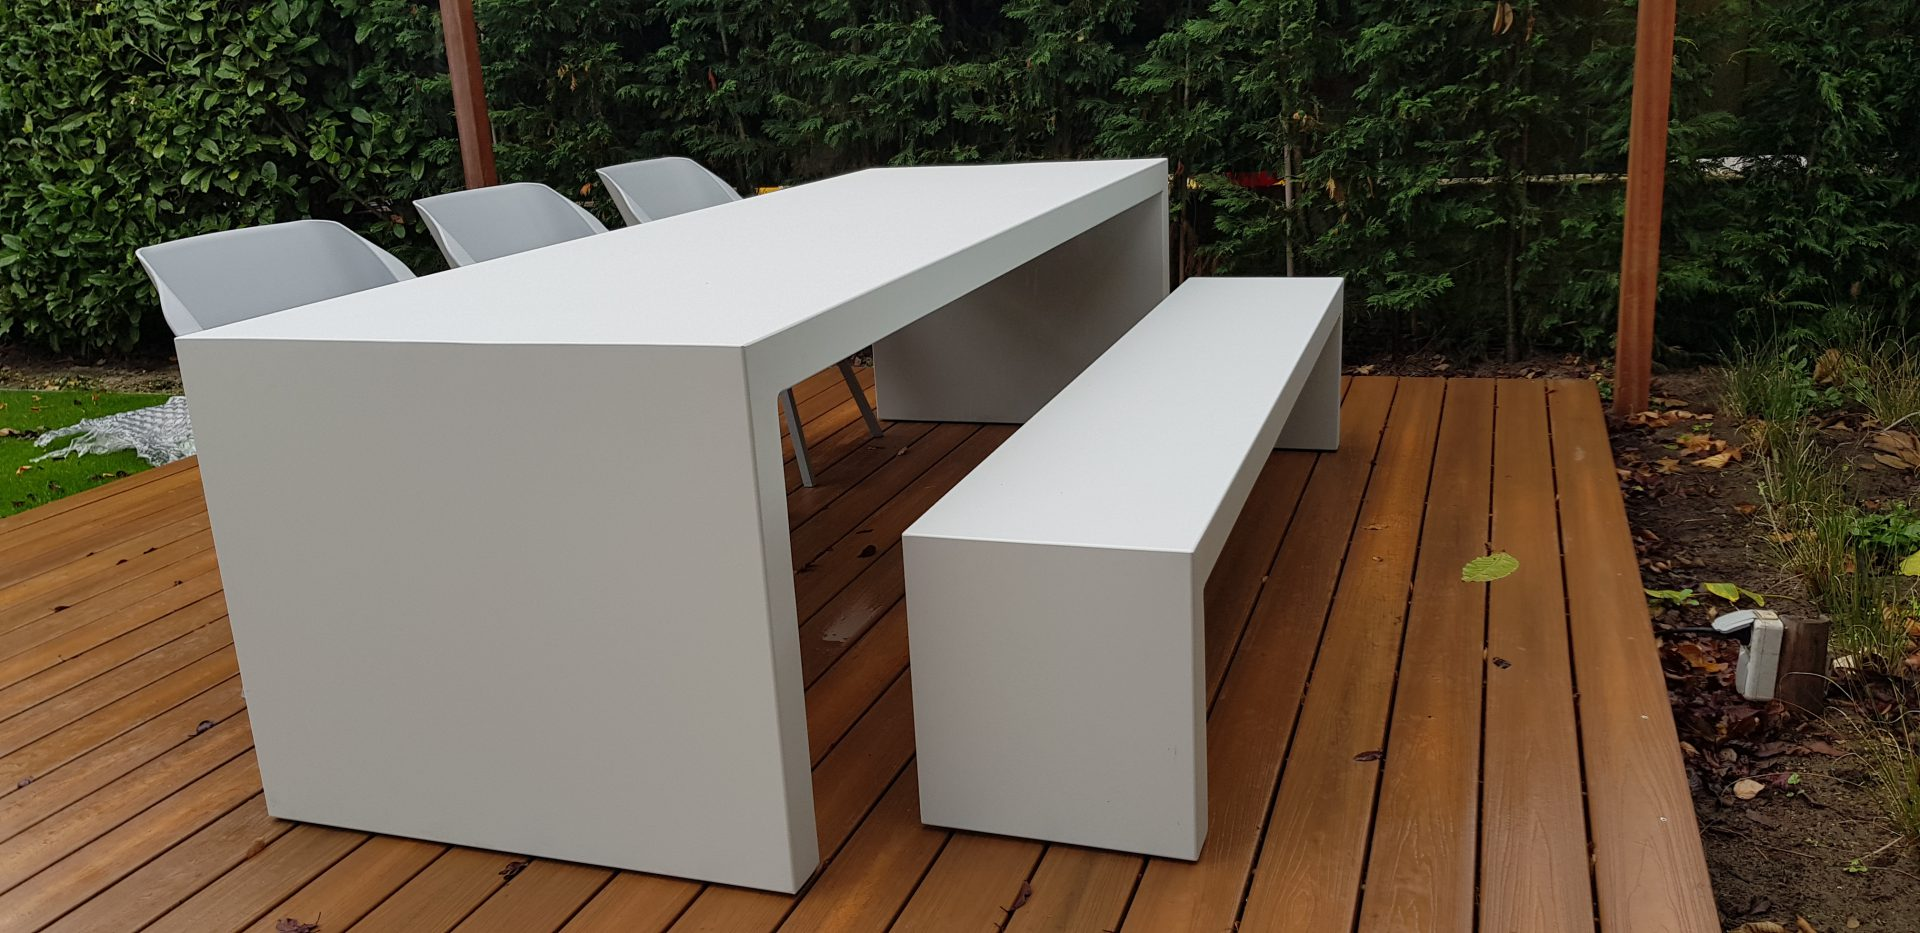 Aluminium tafel en bank - Allure - Box